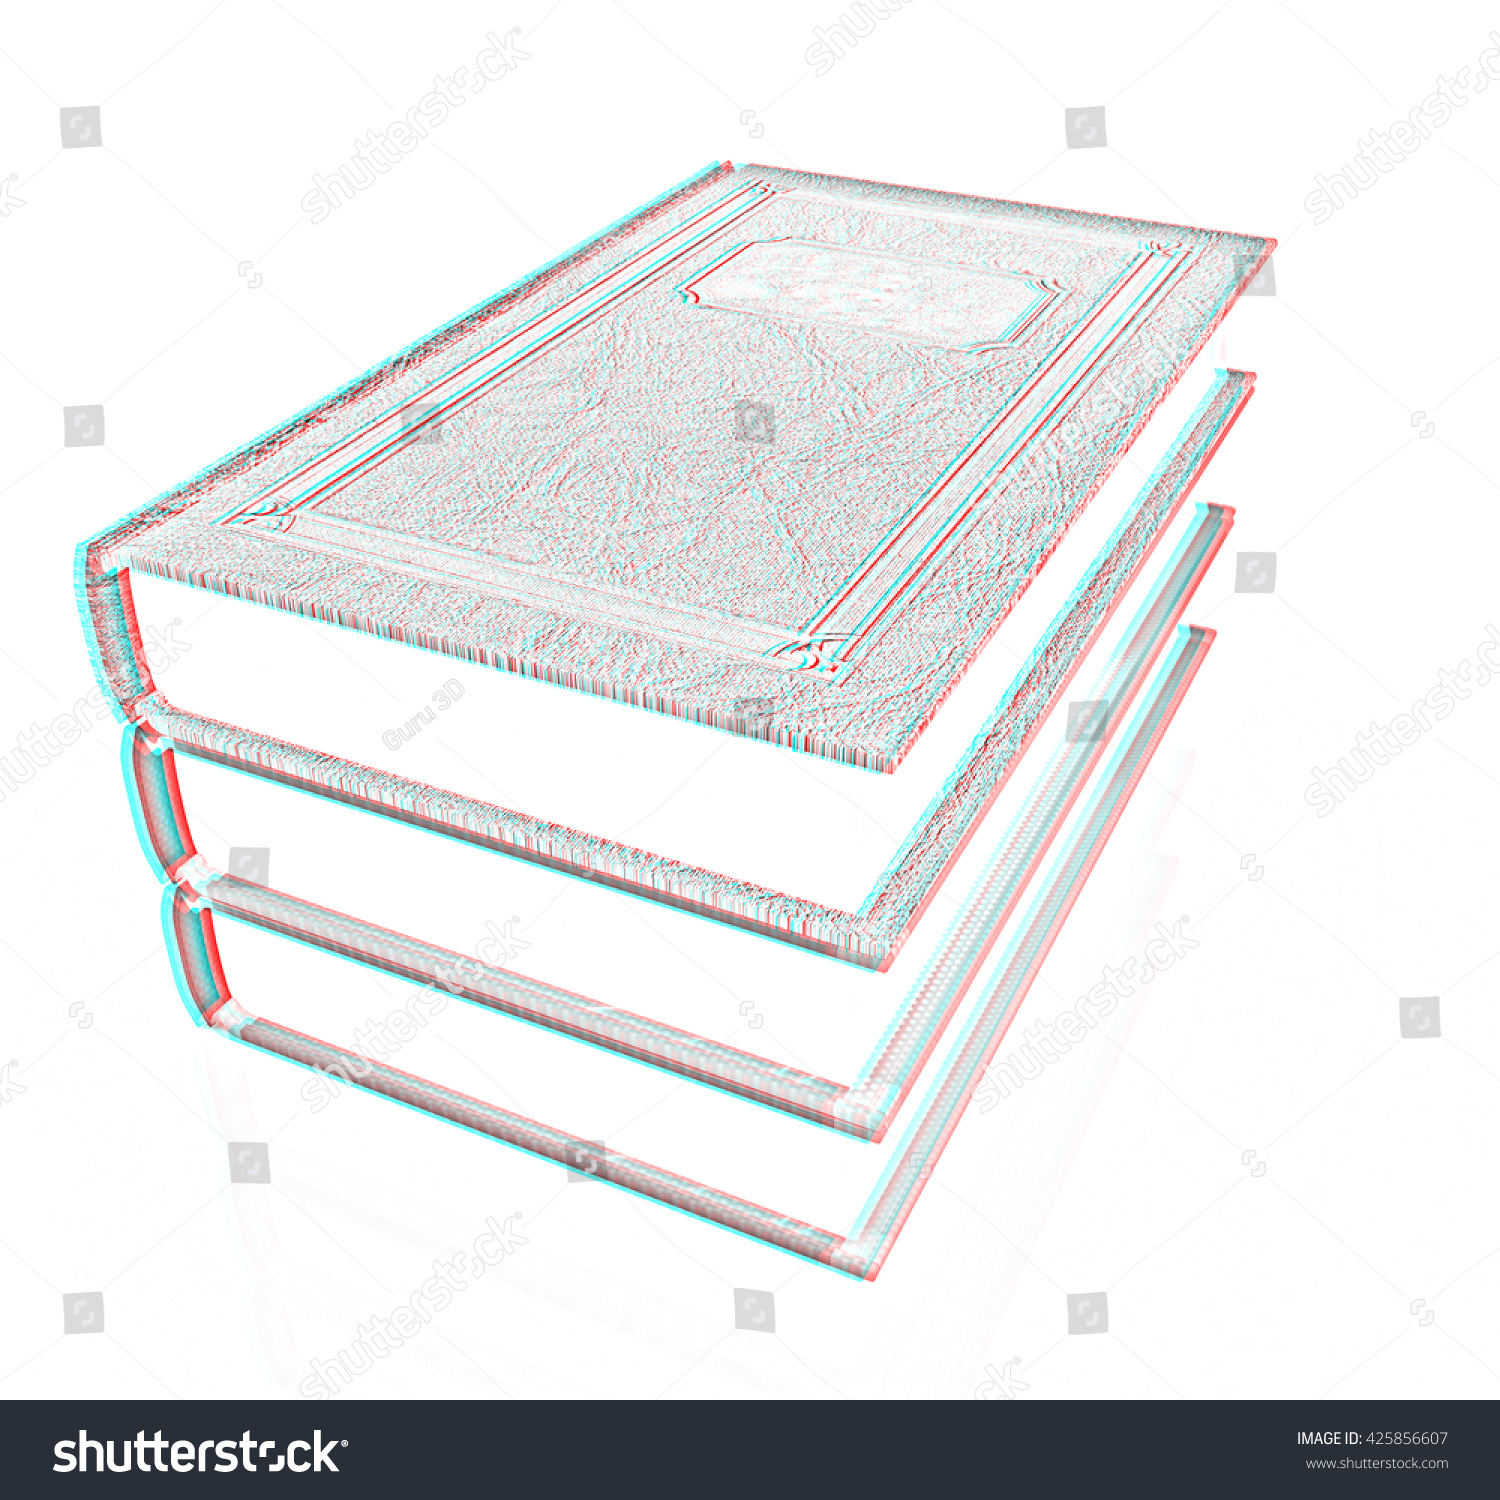 The stack of books on a white background pencil drawing 3d illustration anaglyph